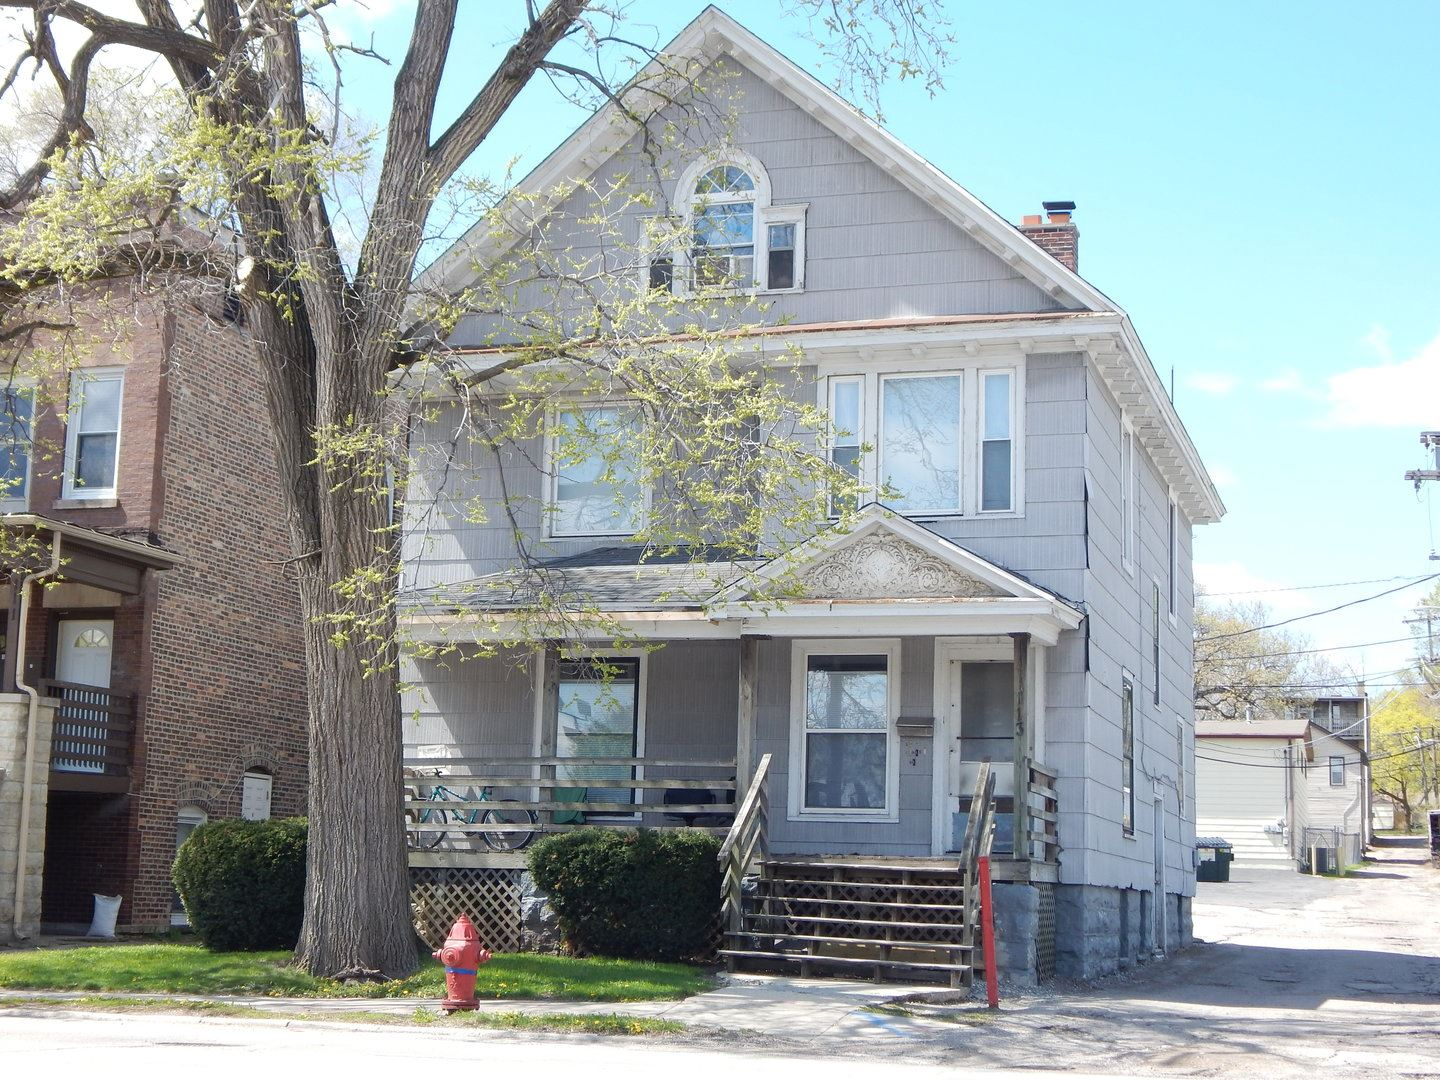 Photo of 113 N Center Street, Joliet, IL 60435 (MLS # 11057989)